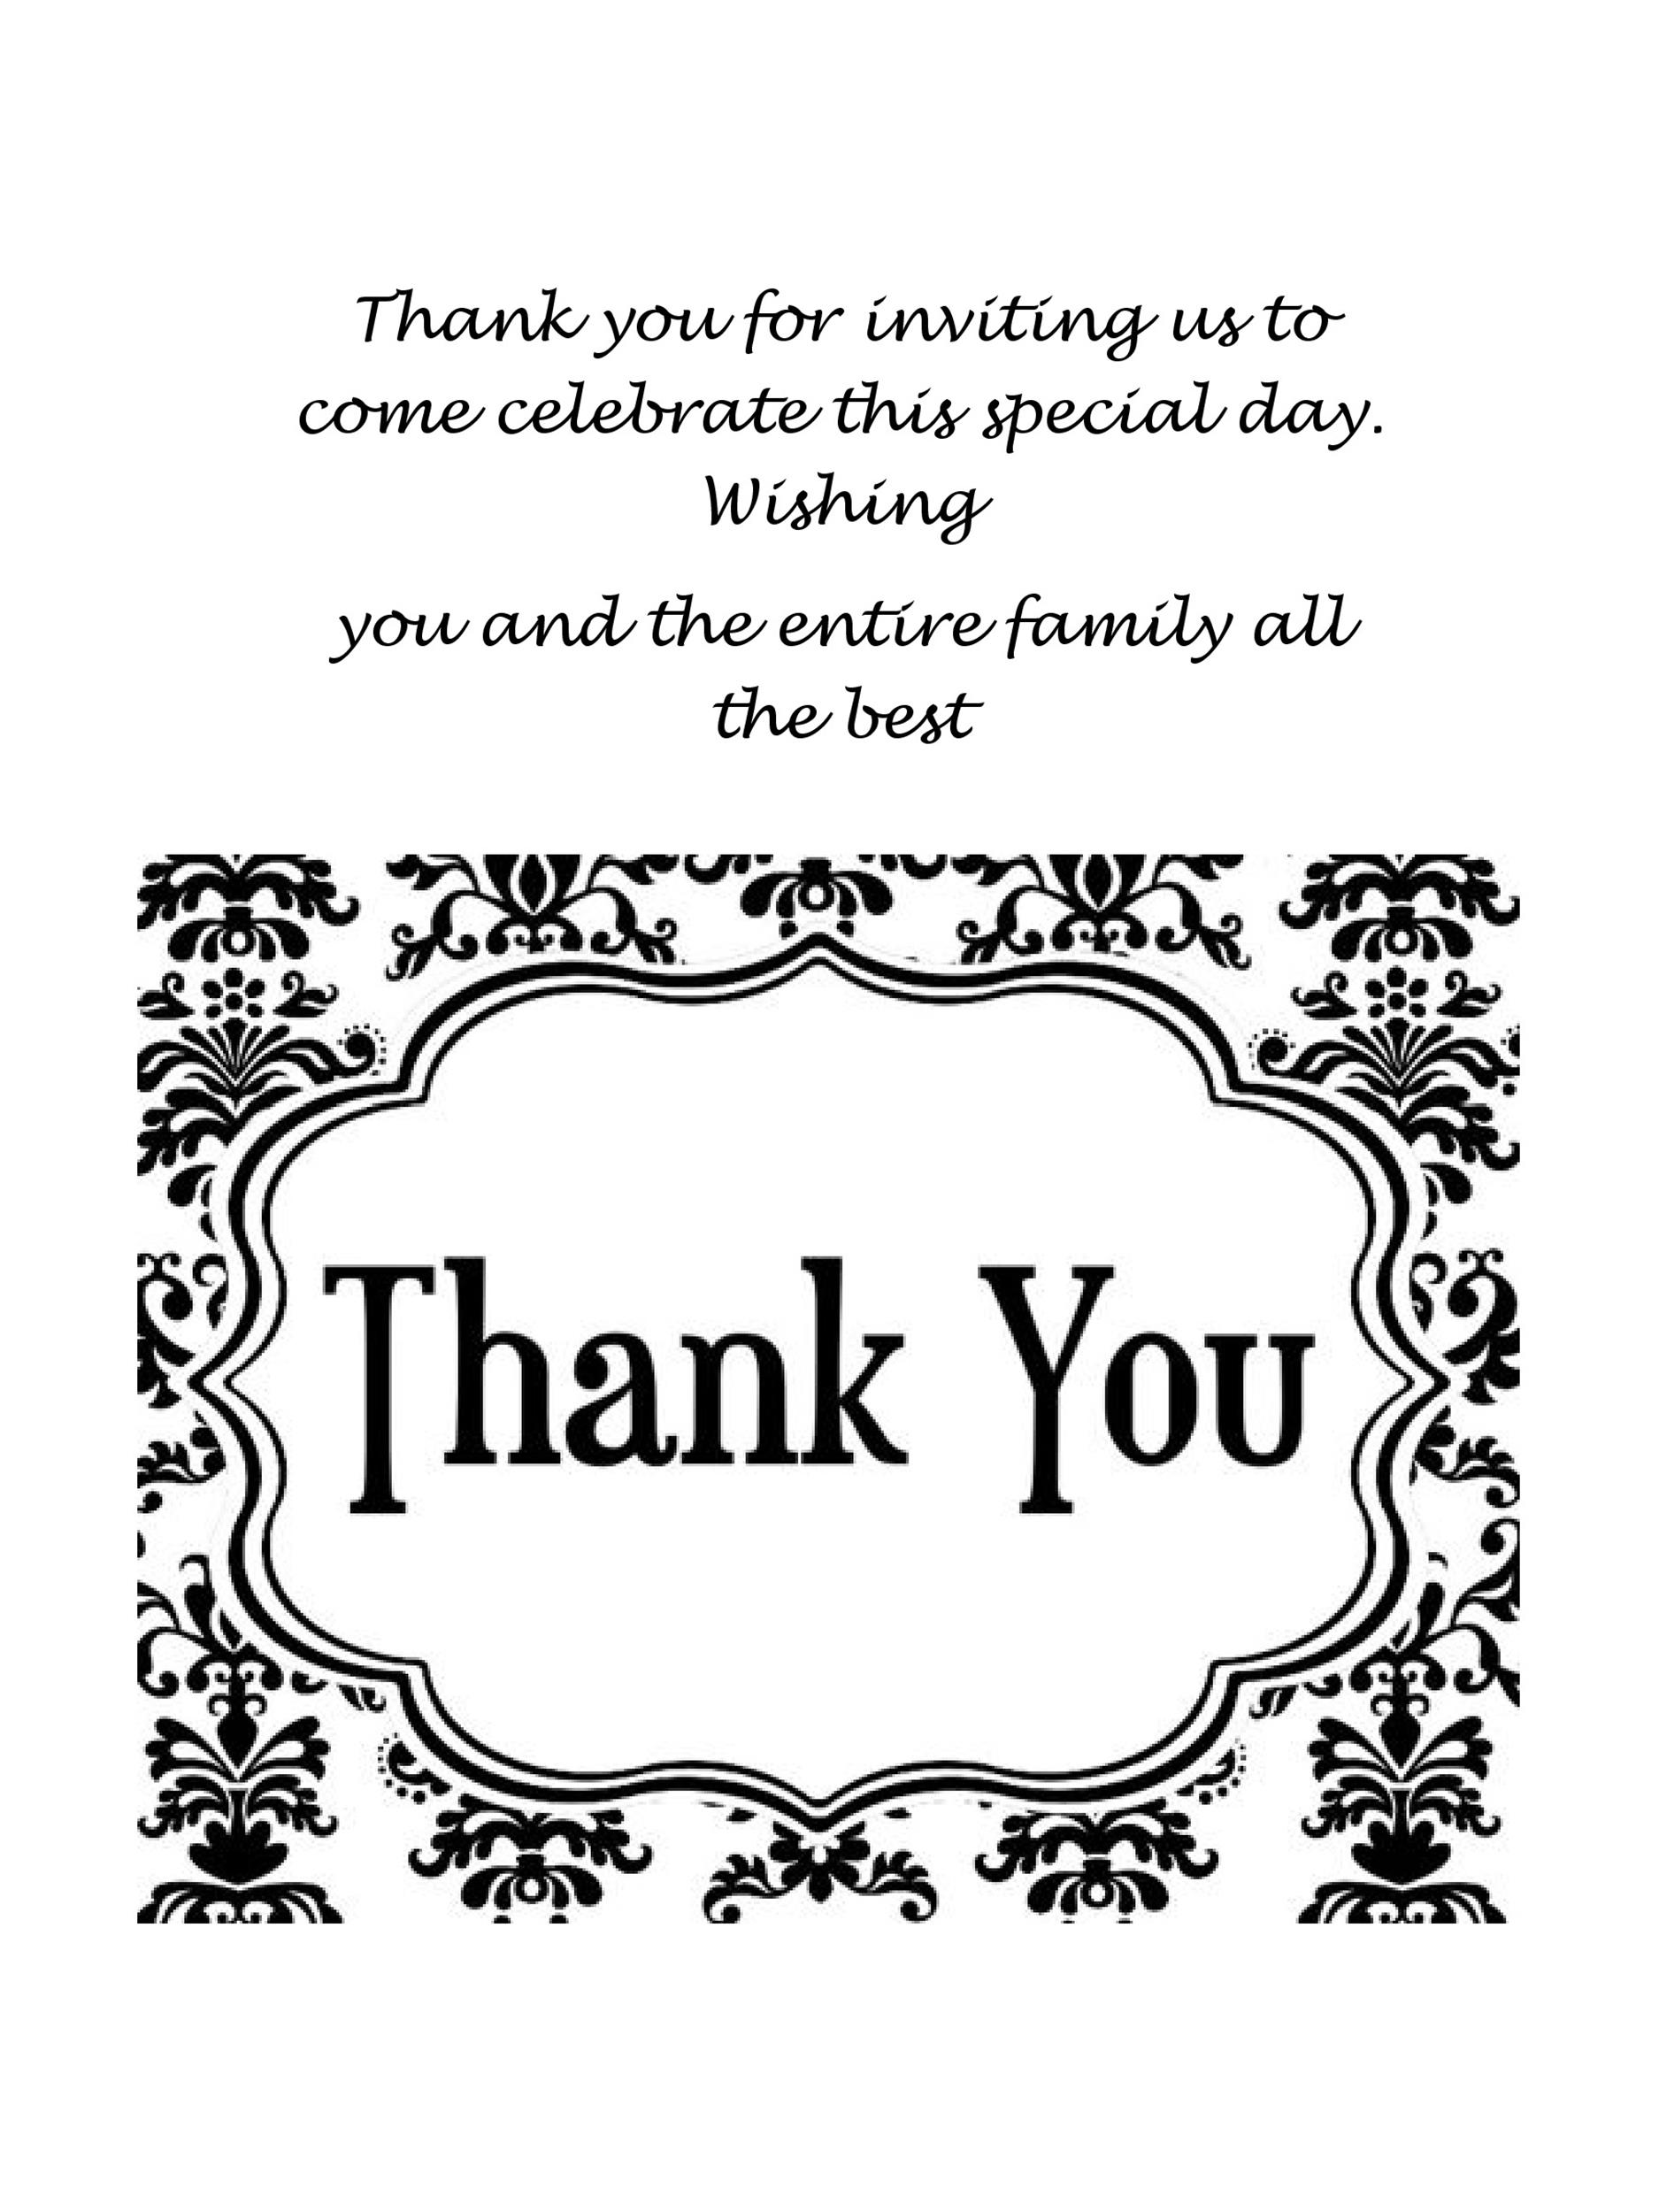 11 Free Thank You Card Templates